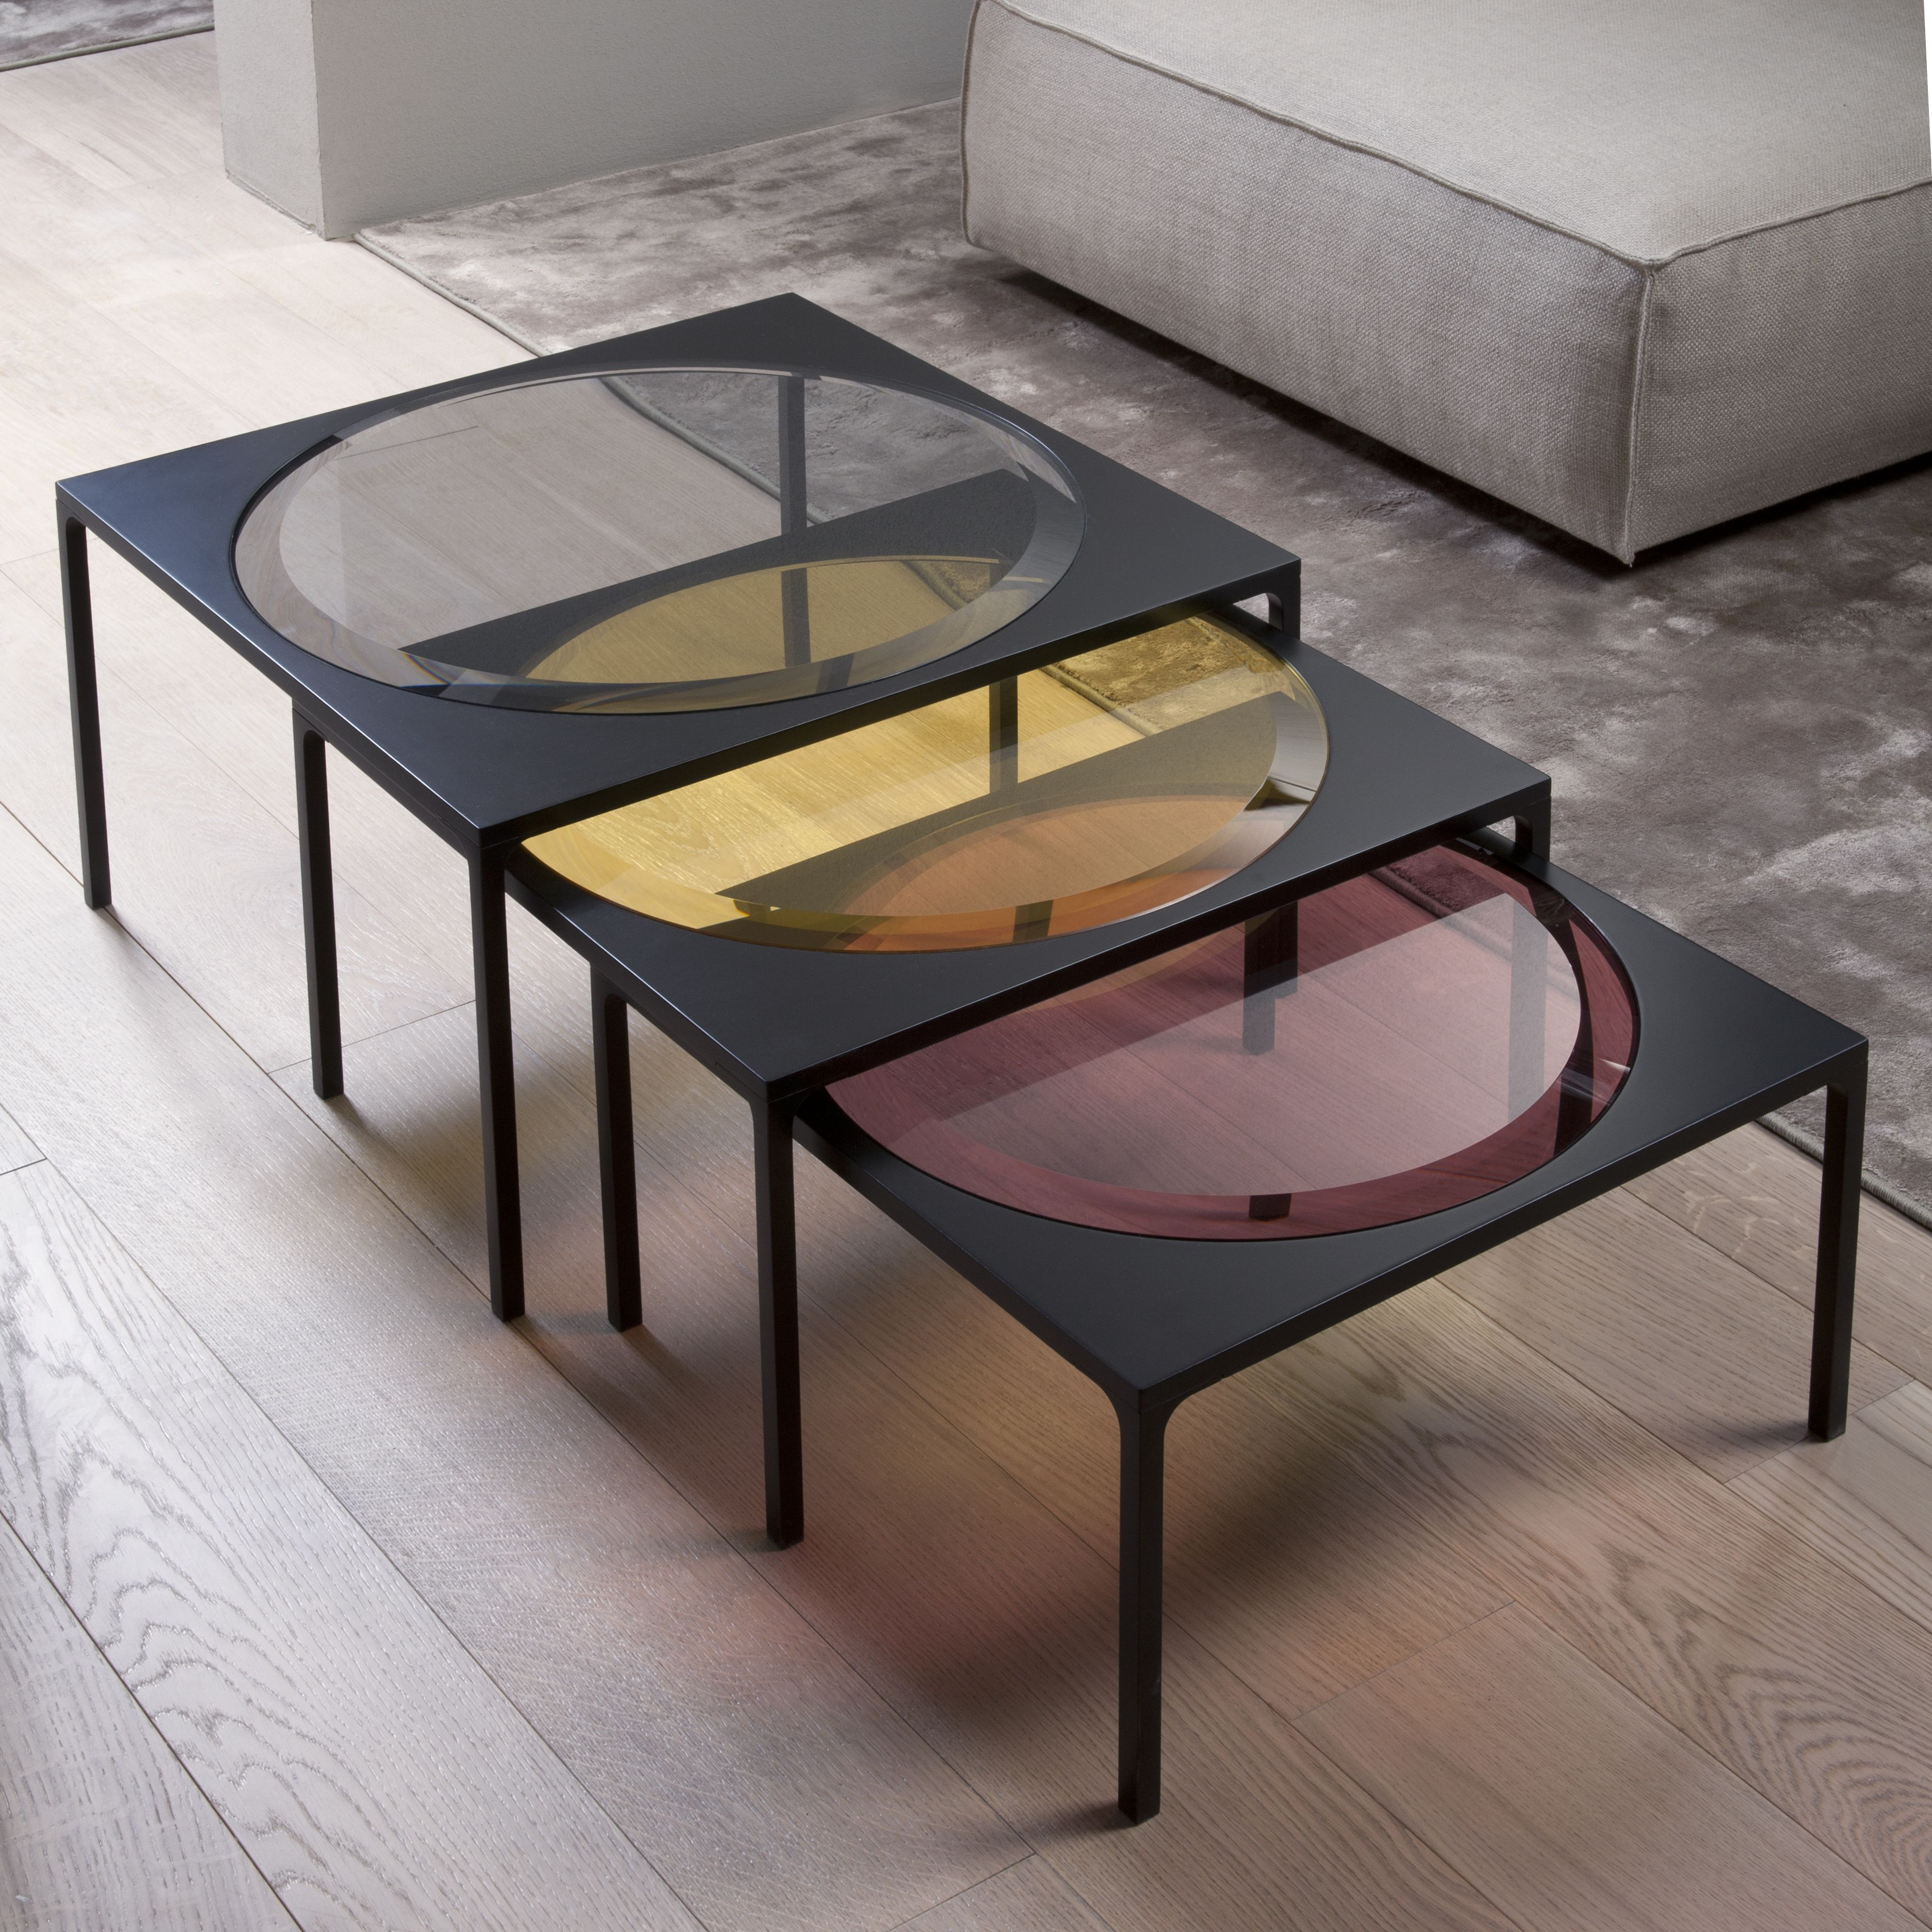 Rulli Coffee Table With 12mm Bevelled 3cm Glass Top Available Stratified Glass In The Colours Smoke Ambe Coffee Table Design Coffee Table Glass Furniture [ 3744 x 3744 Pixel ]